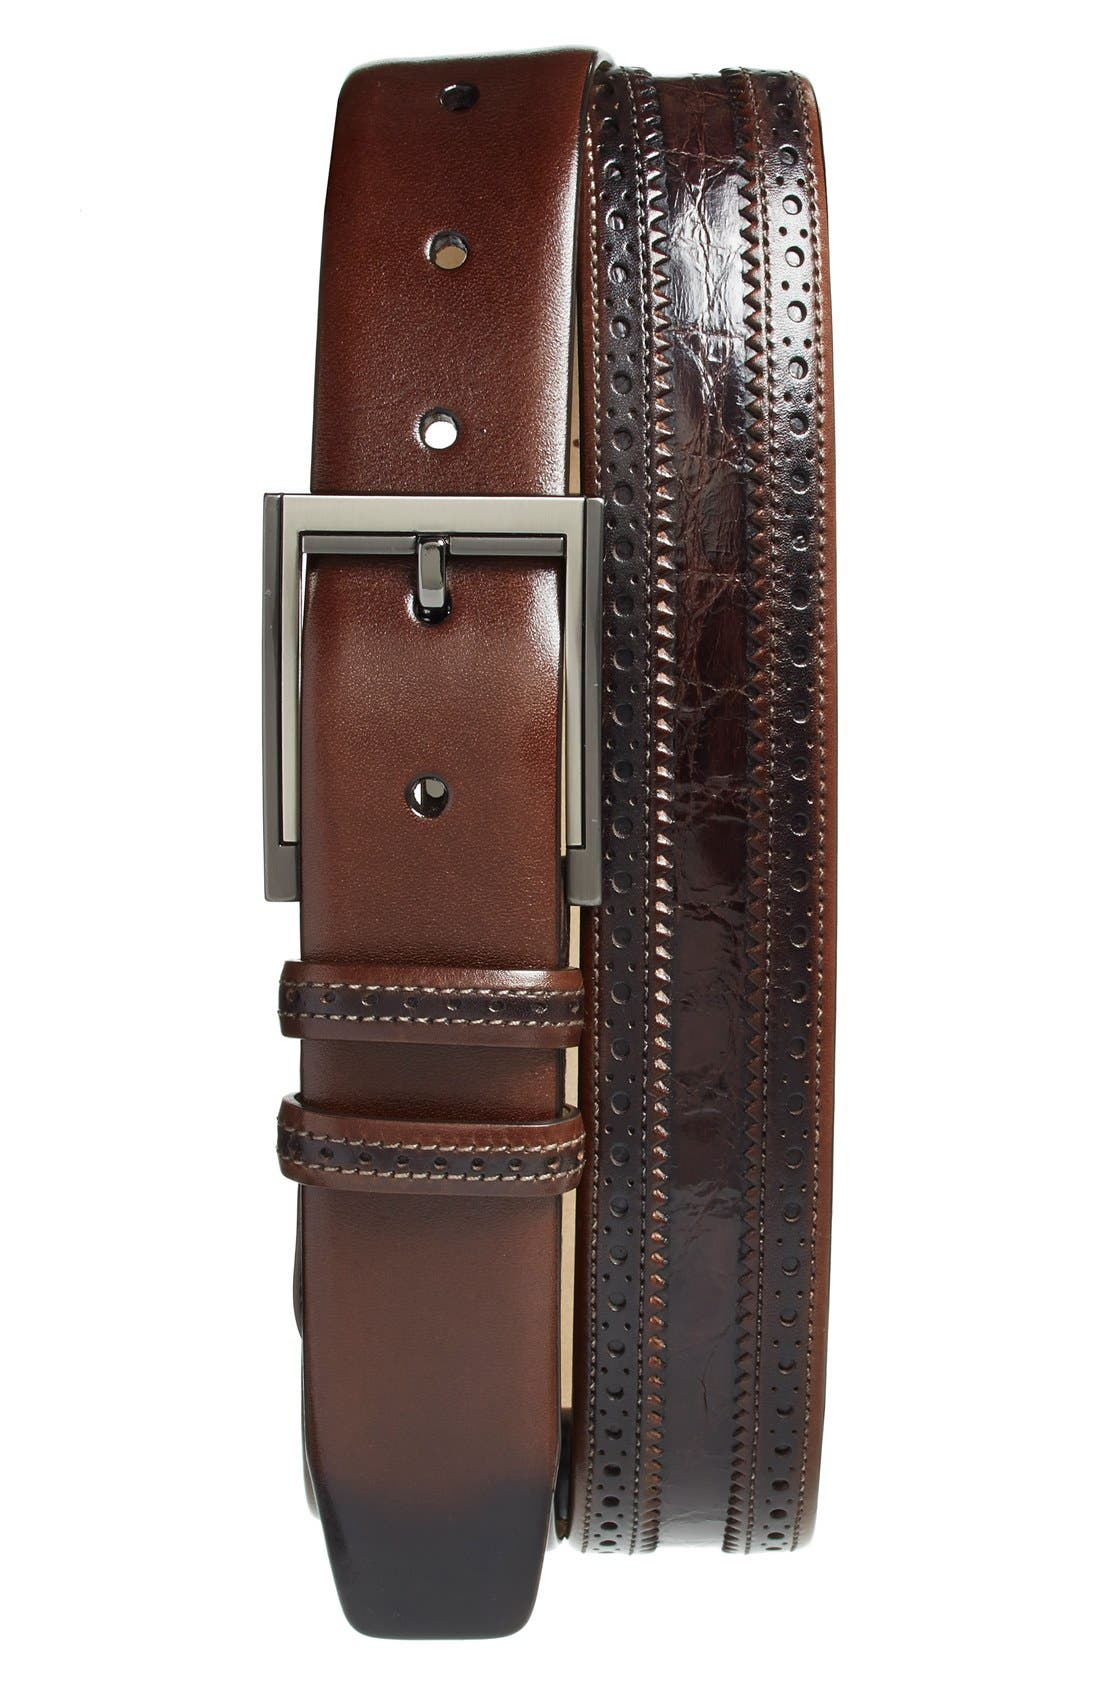 MEZLAN 'Diver' Crocodile Leather Belt